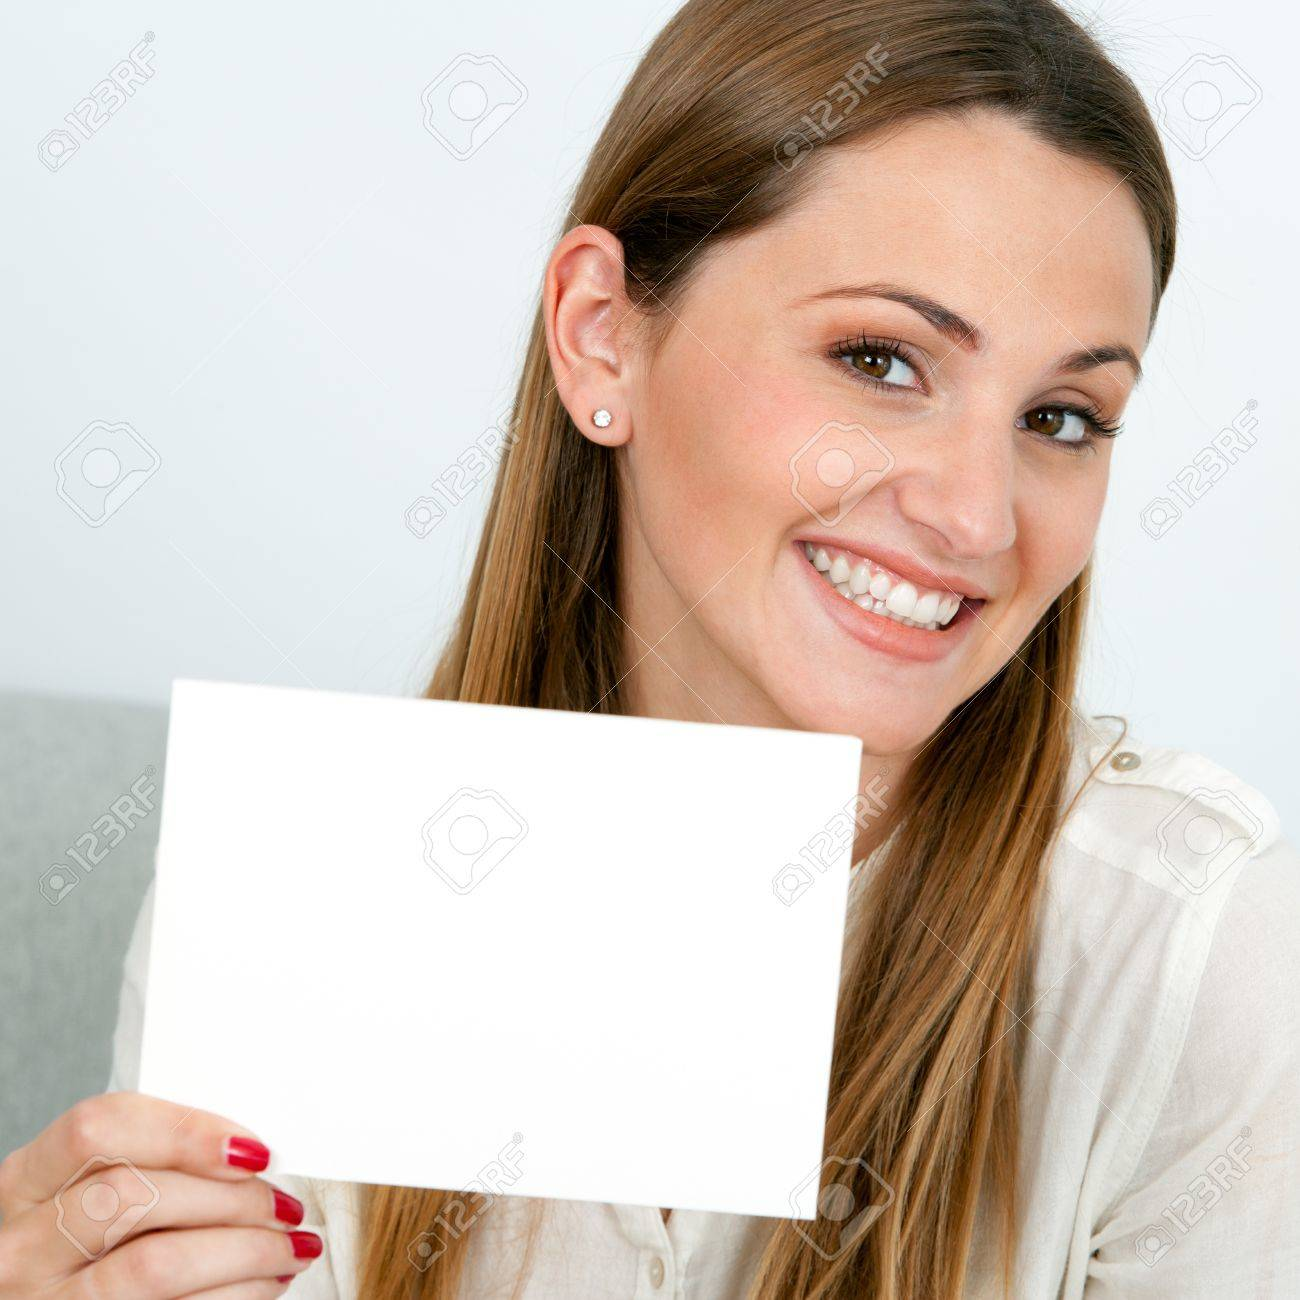 Close up portrait of attractive young woman holding white card. Stock Photo - 17239271